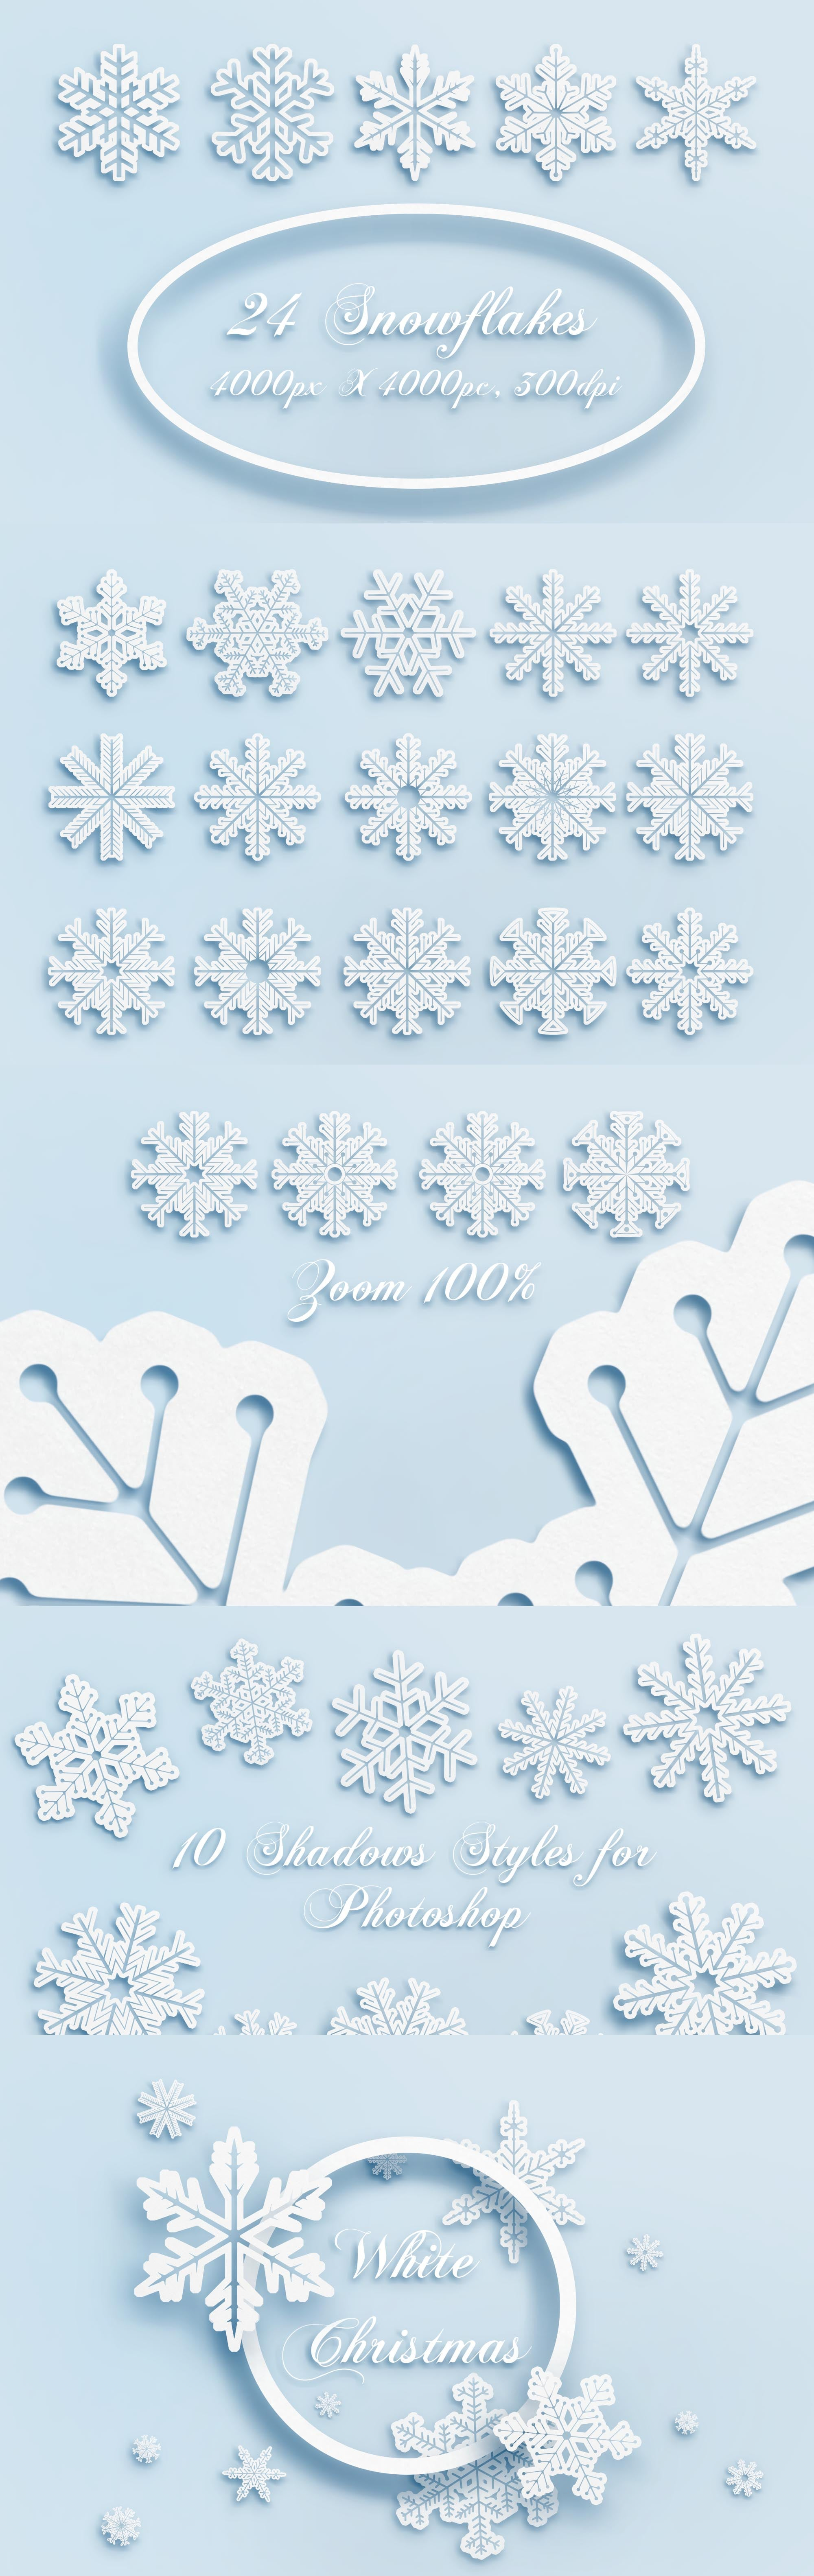 100 Winter Backgrounds: Prepare Your Designs for the Winter Season - WhiteChristmas P1